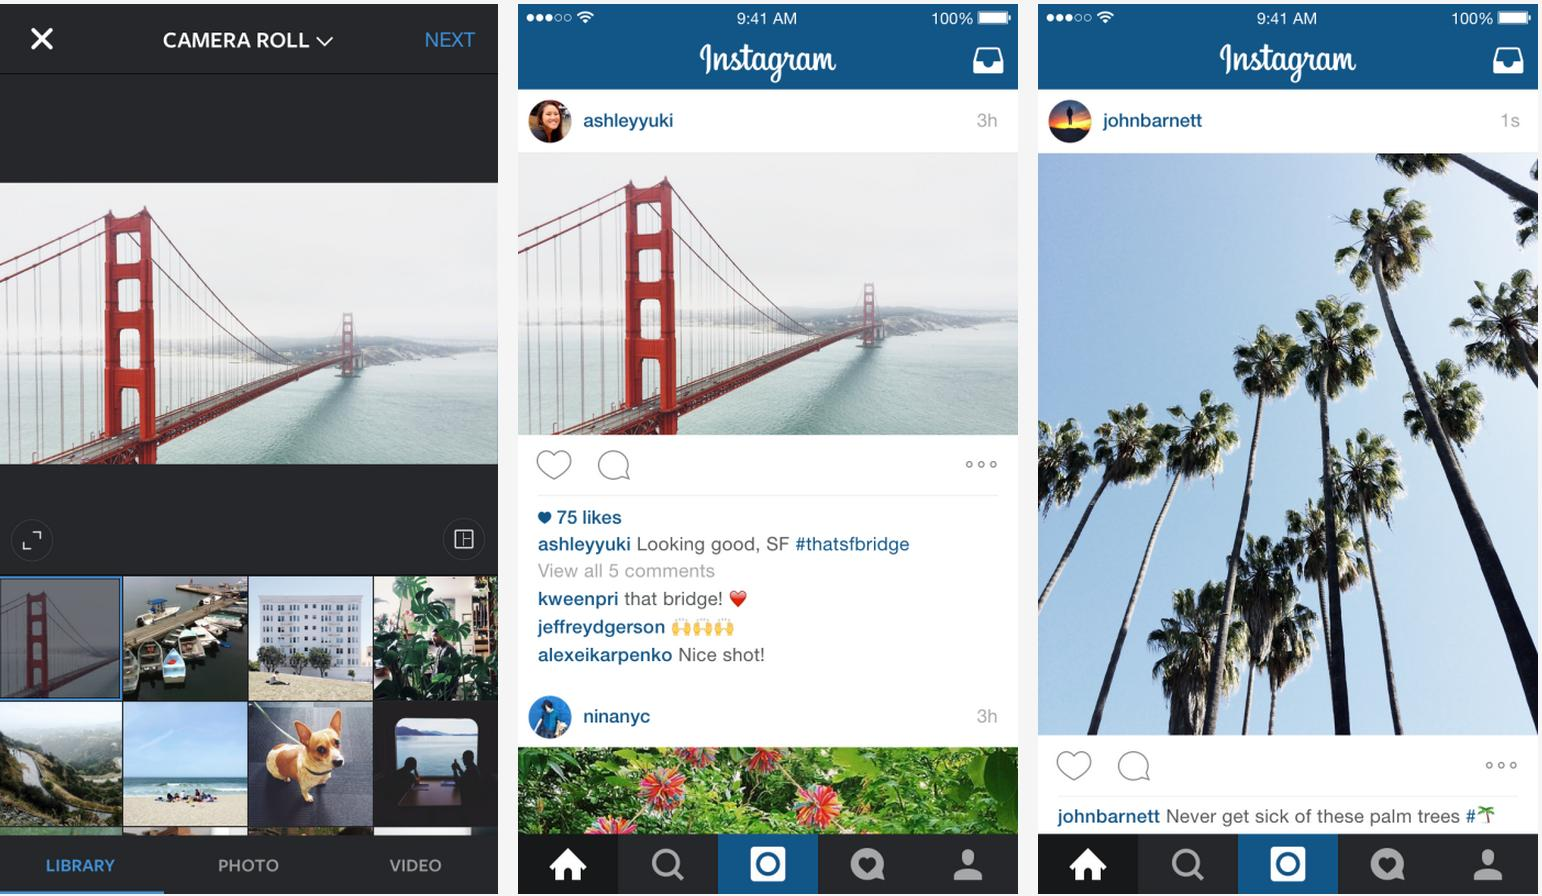 wersm Instagram Leaves Behind Squared Images